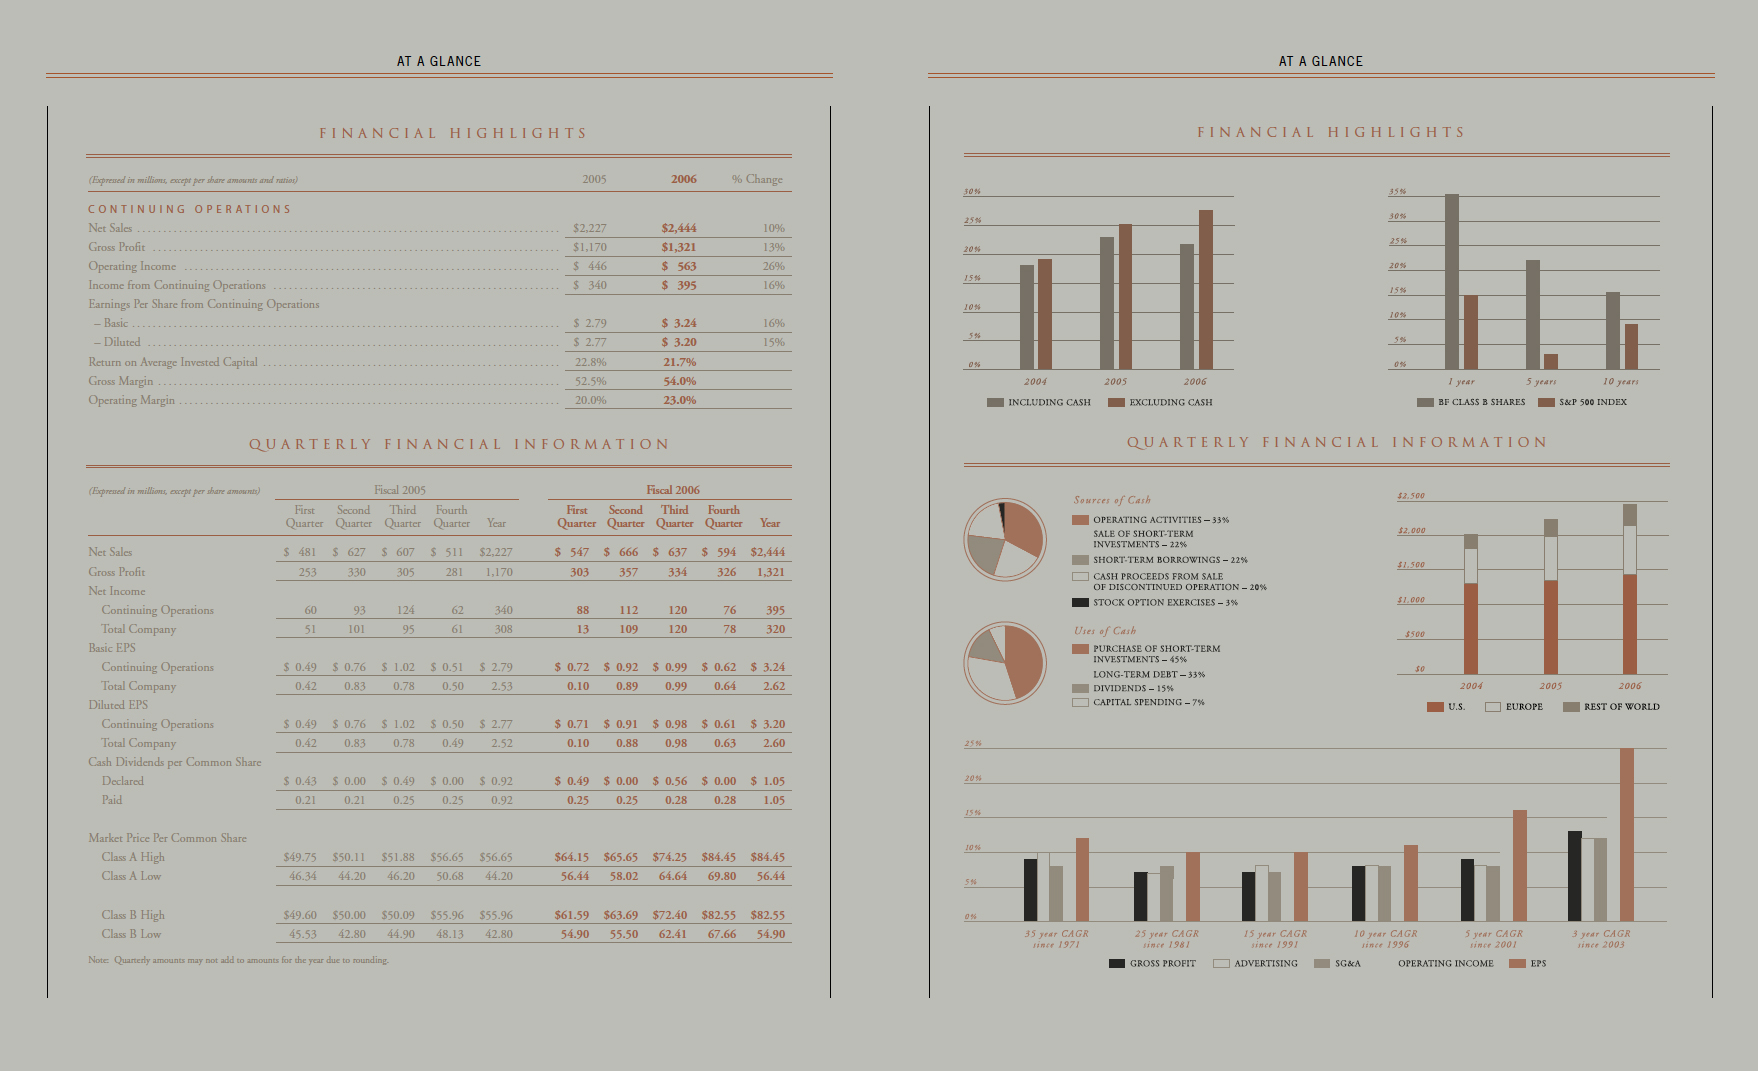 brown forman annual report stats